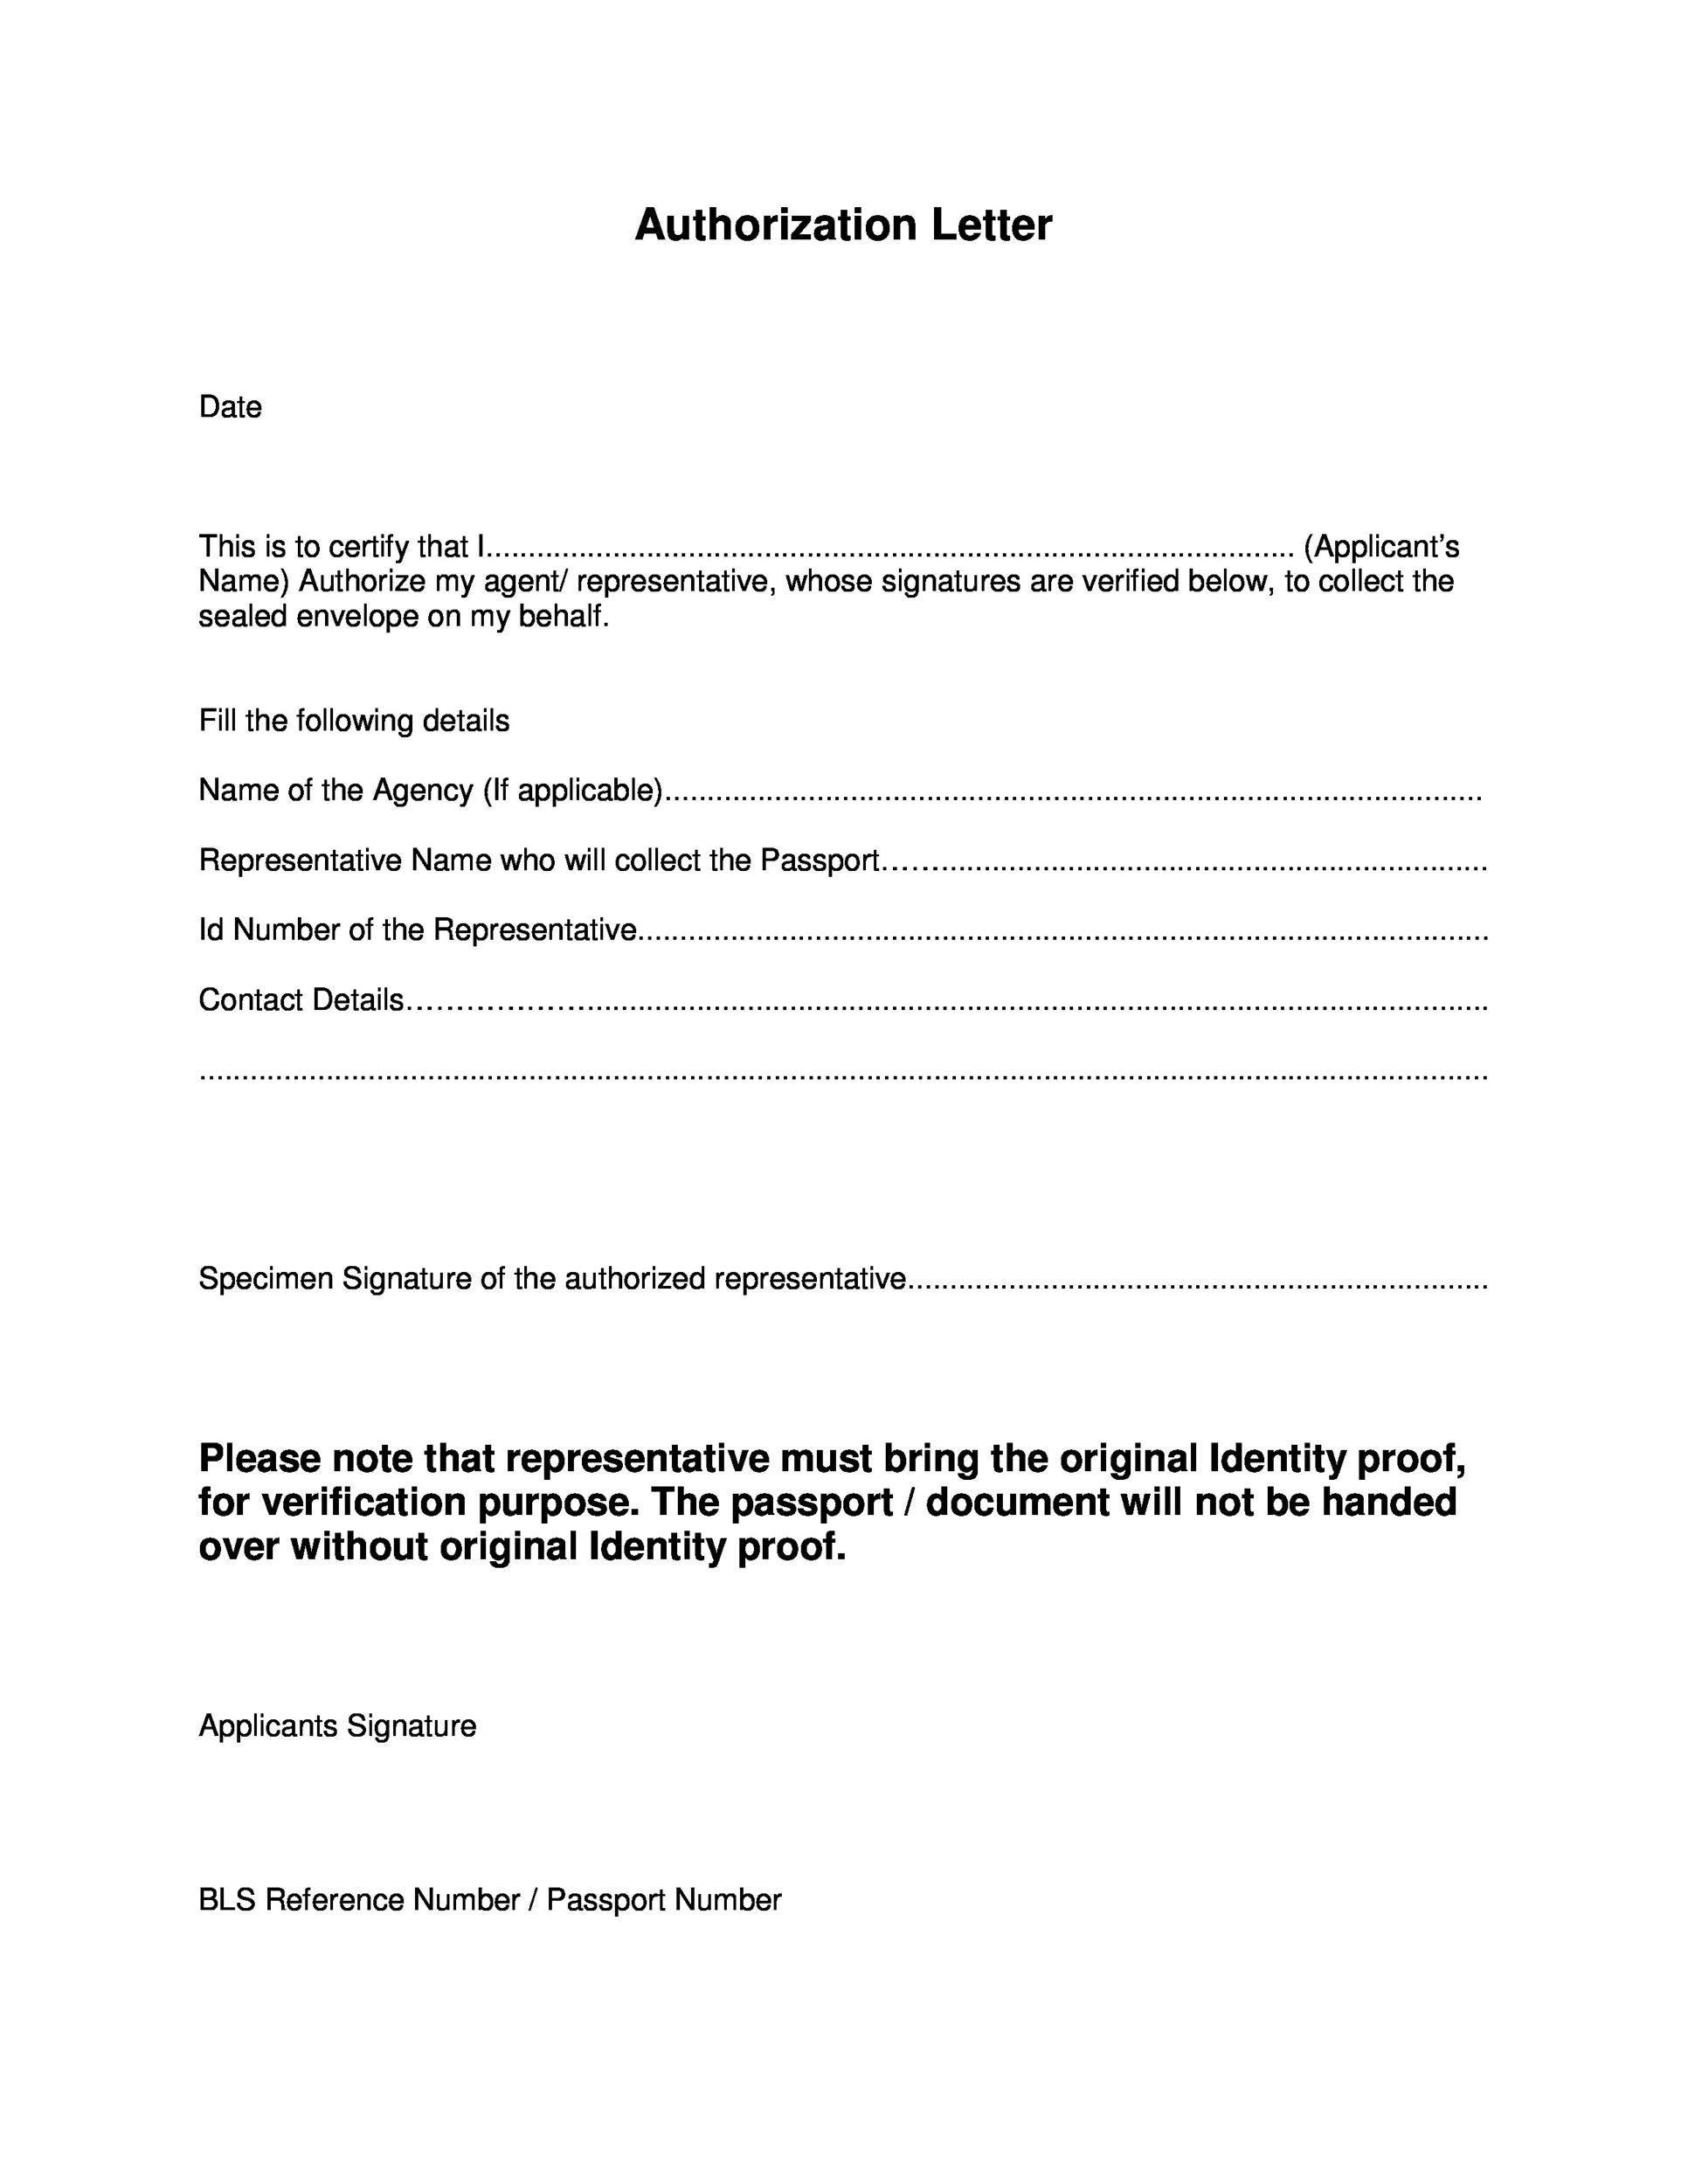 46 Authorization Letter Samples  Templates - Template Lab - letters of authorization